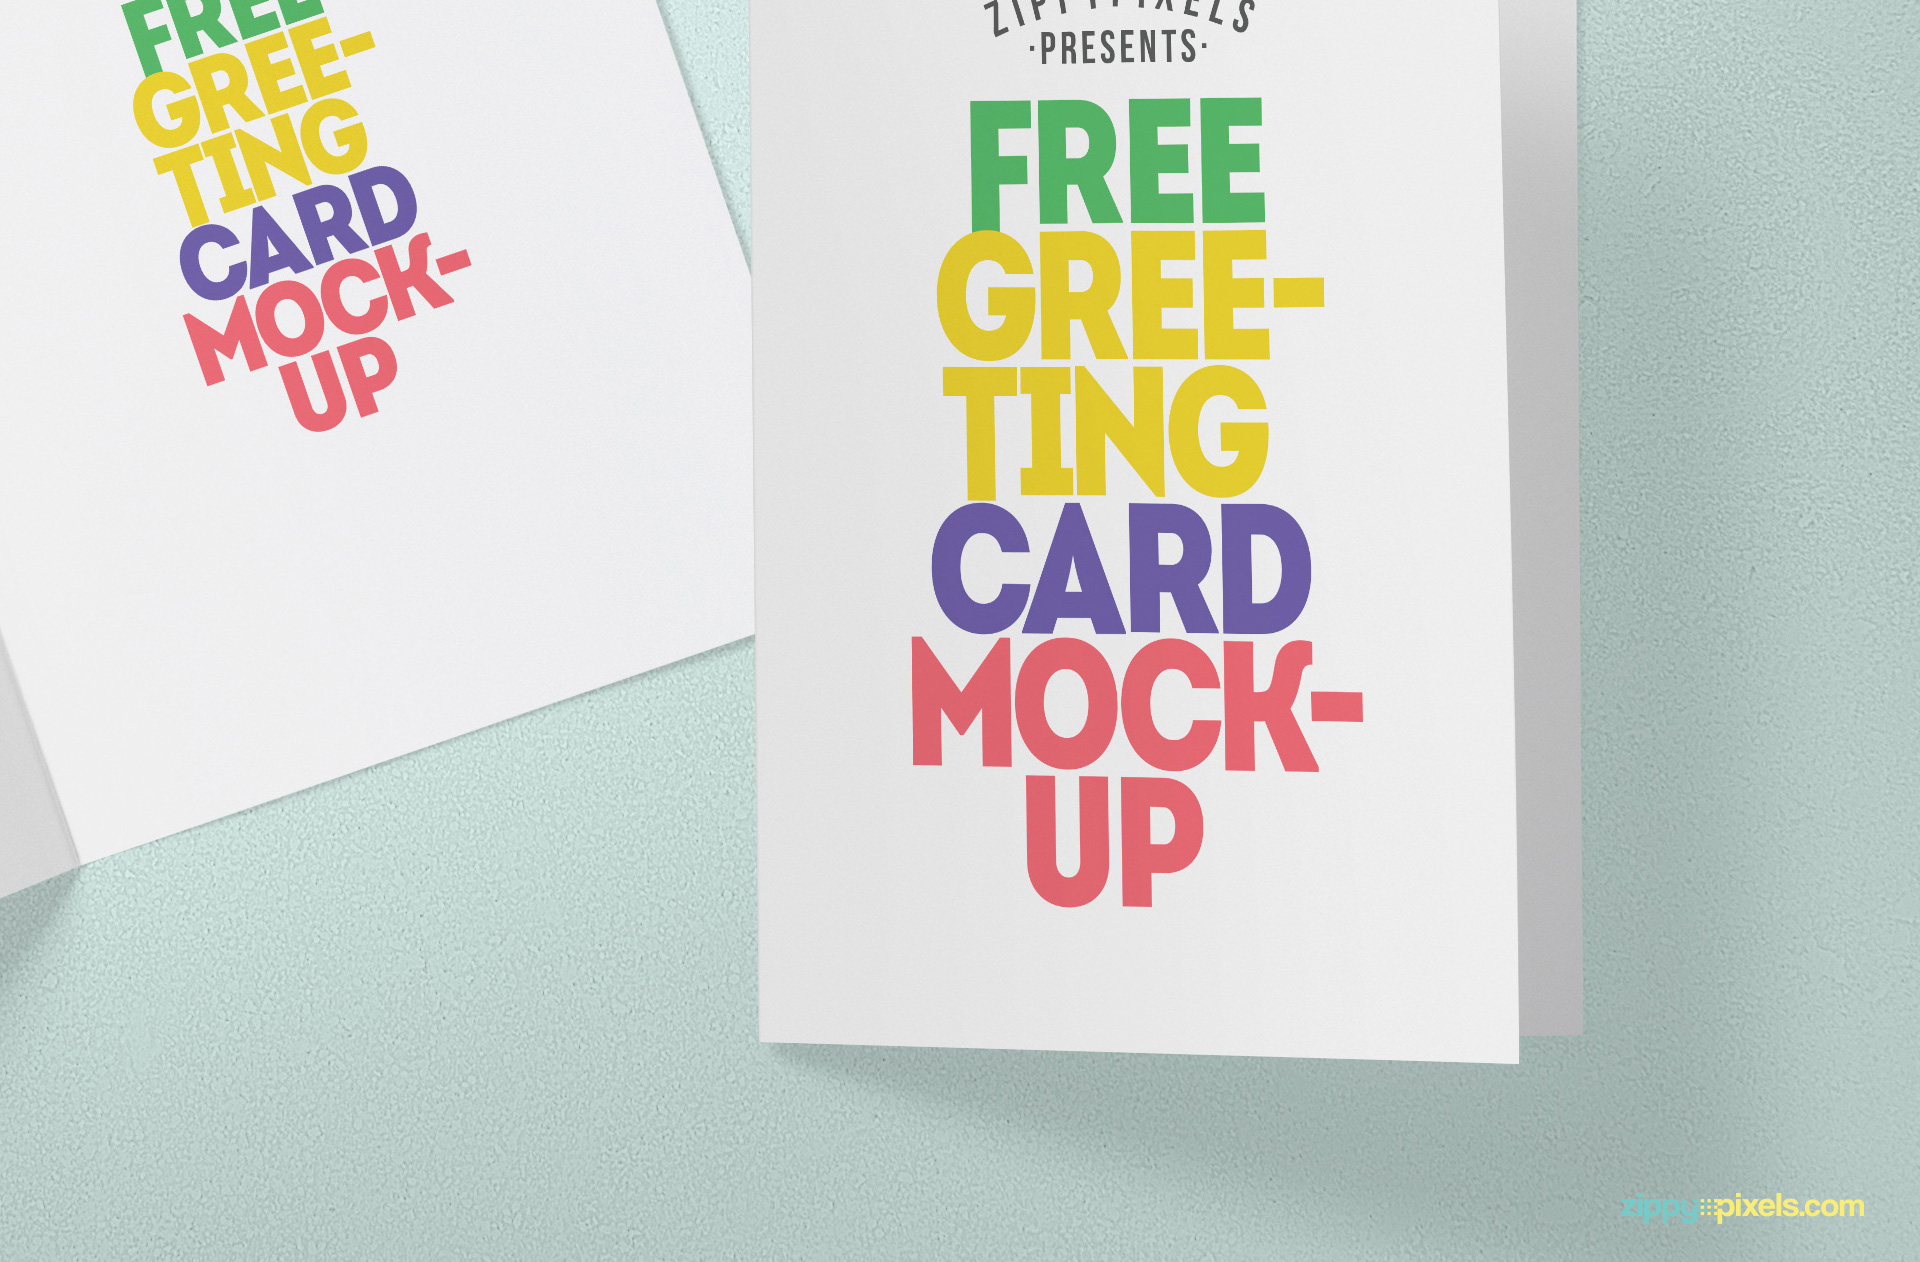 Smart object based free greeting card mock-up